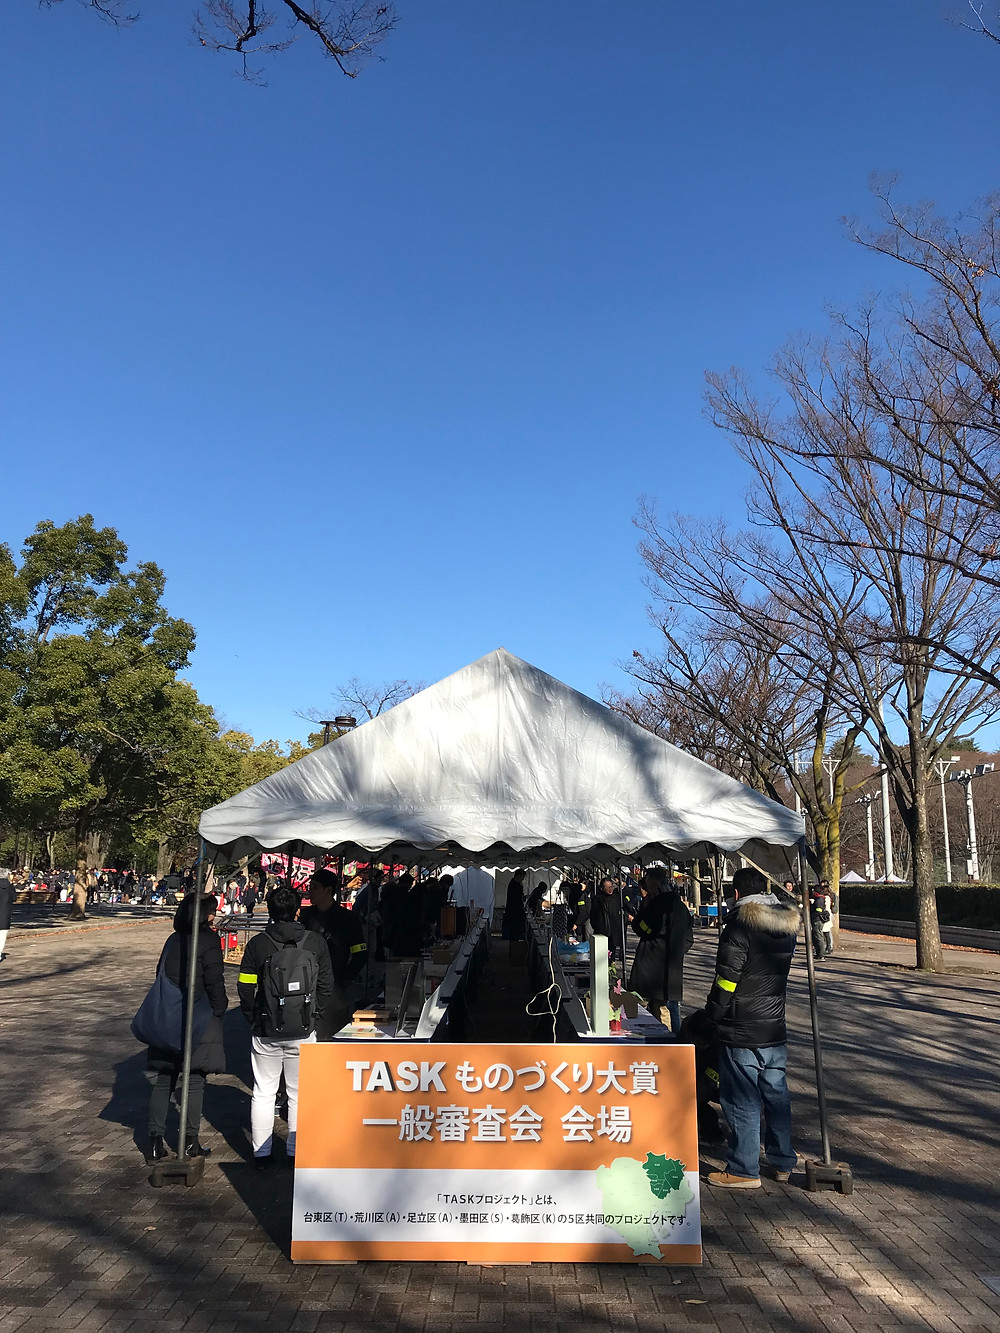 TASKものづくり大賞一般審査会